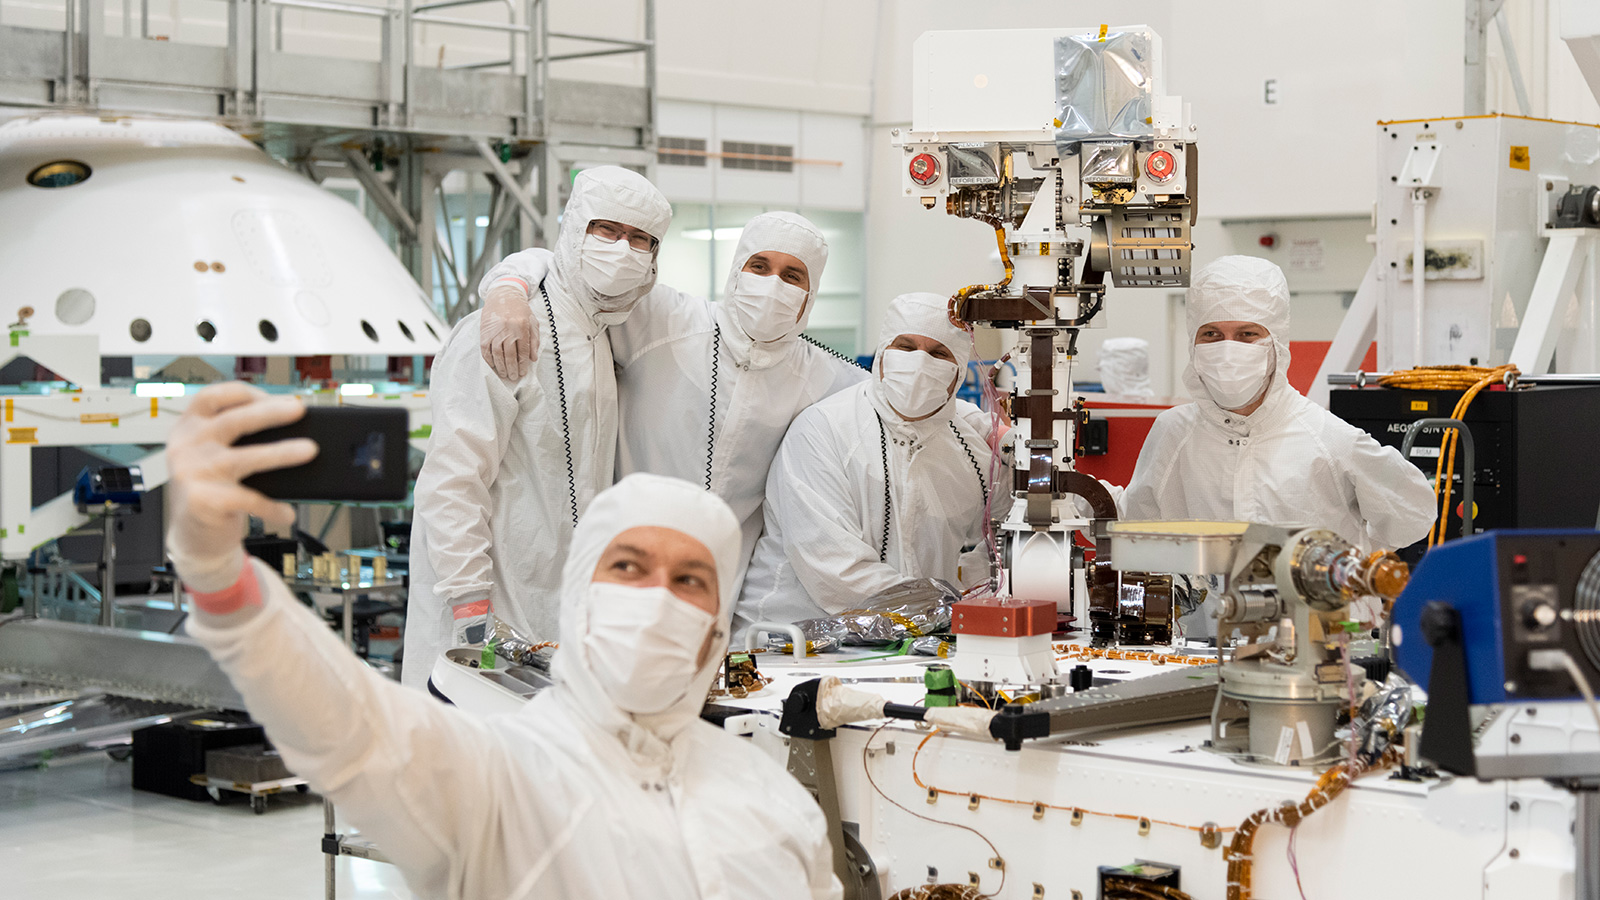 Members of NASA's Mars 2020 project take a moment after attaching the remote sensing mast to the Mars 2020 rover.